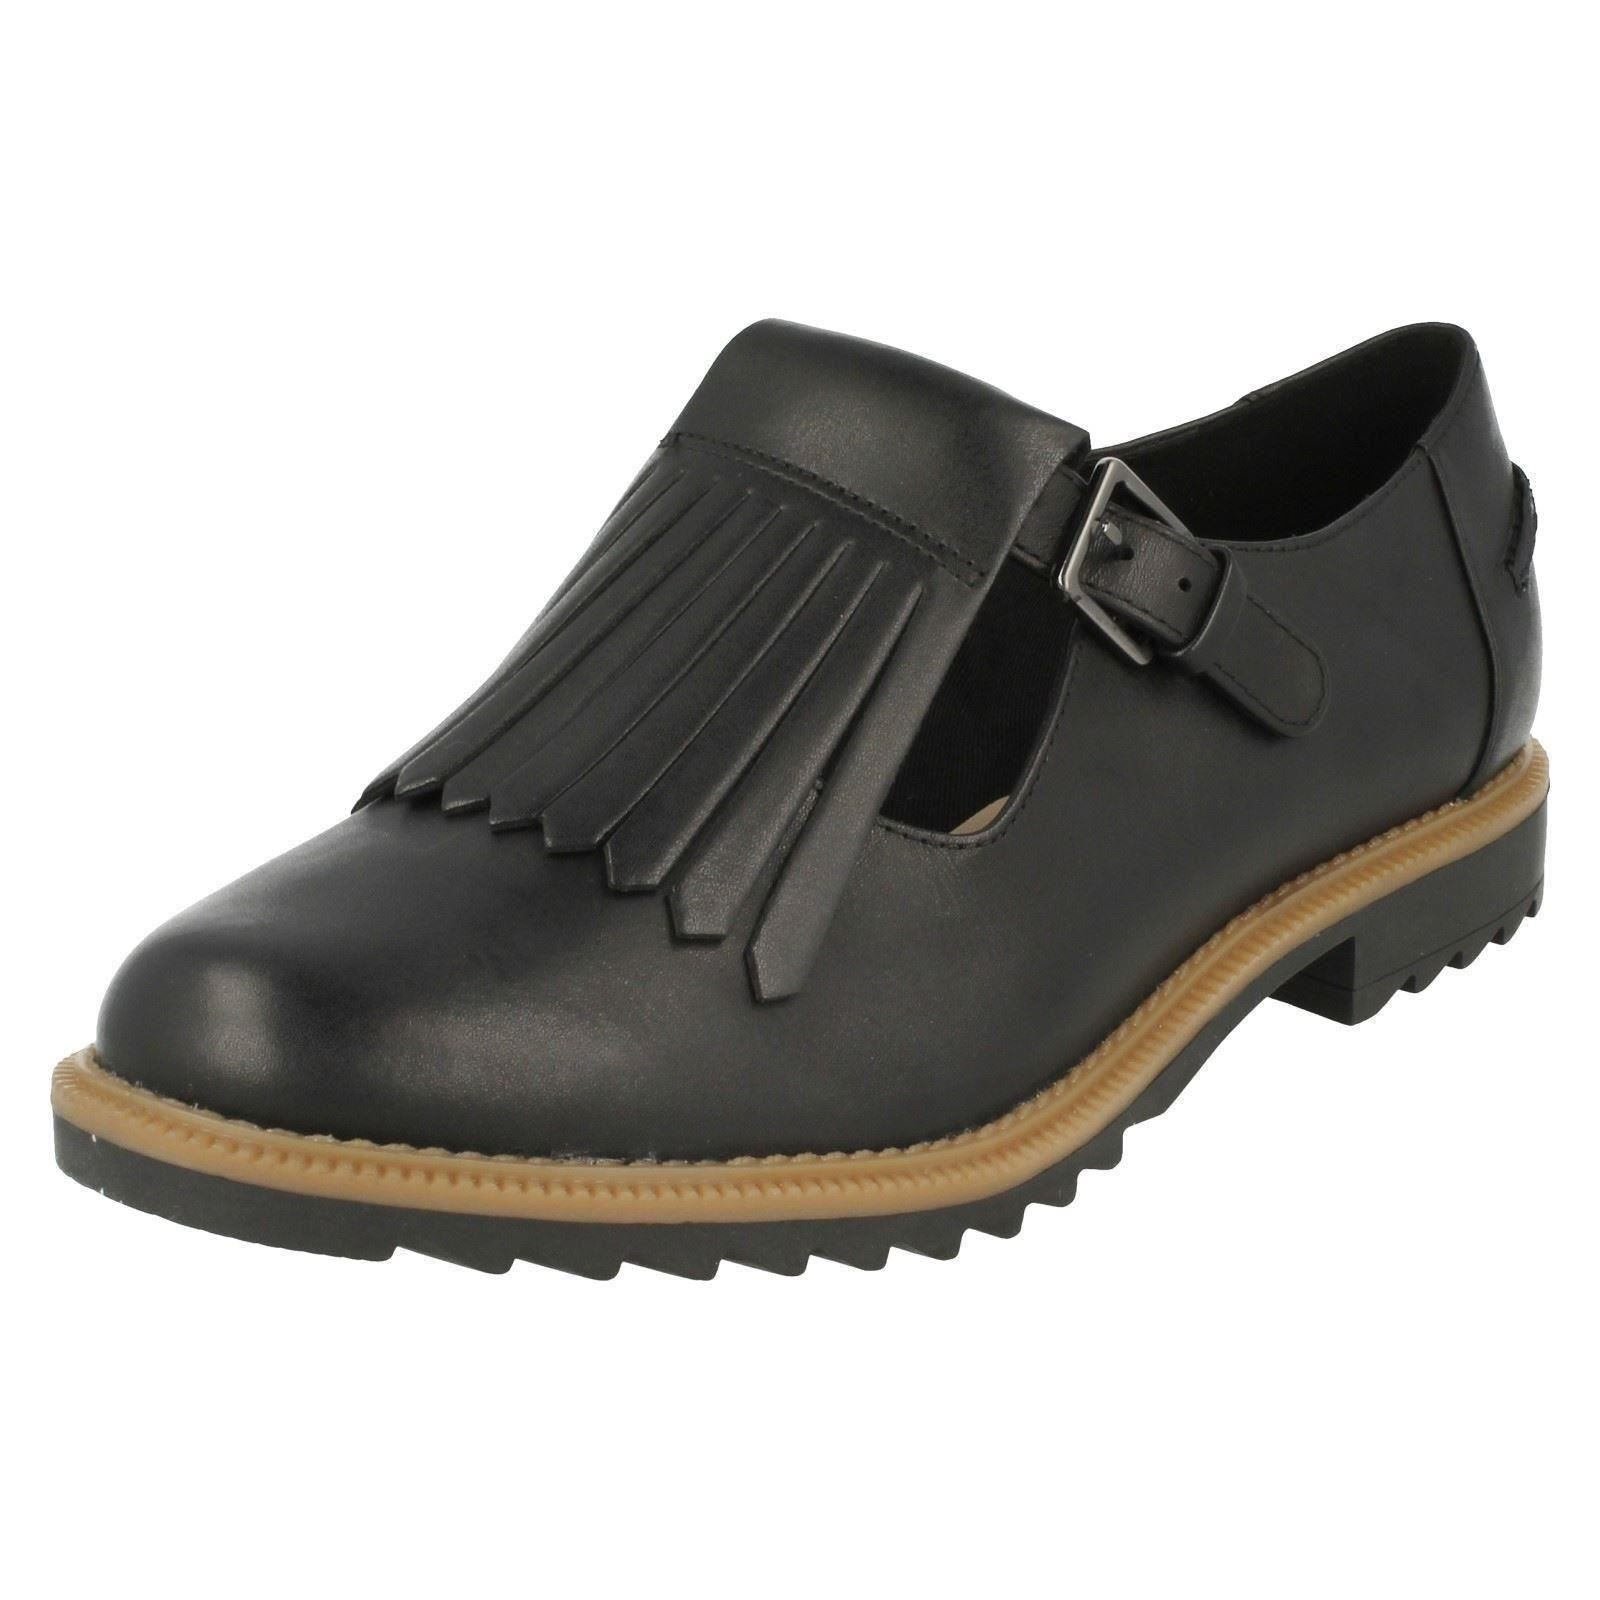 Ladies-Clarks-T-Bar-Buckle-Fastening-Fringe-Low-Heel-Leather-Flats-Griffin-Mia